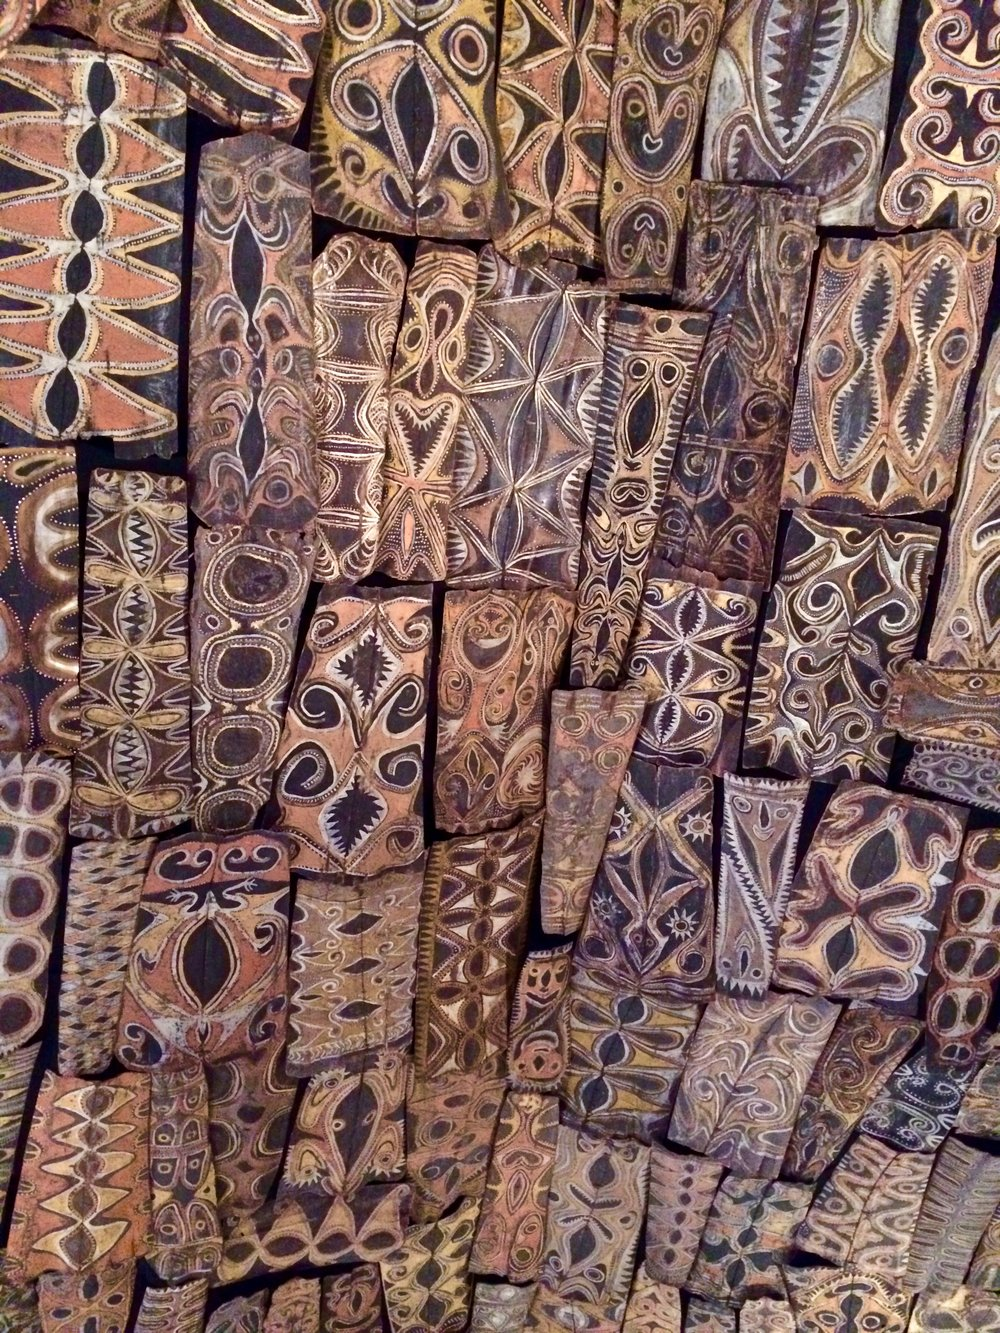 The ceiling of a ceremonial house of the Kwoma People from northeastern New Guinea